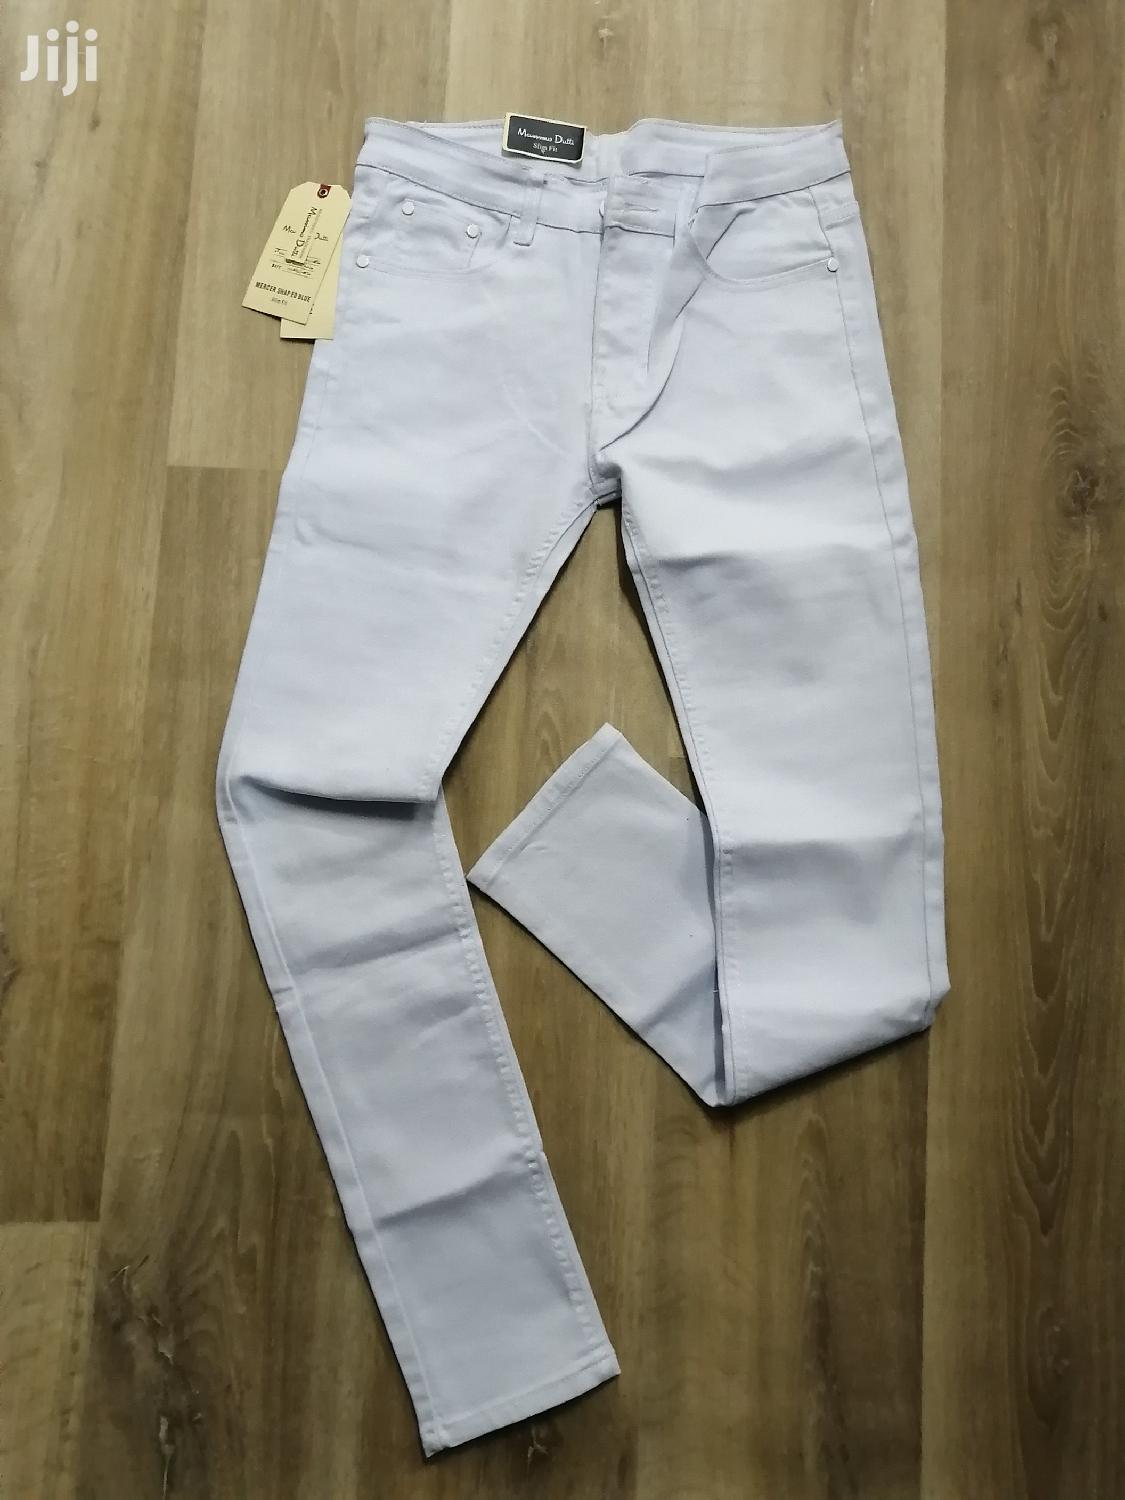 Jeans Available